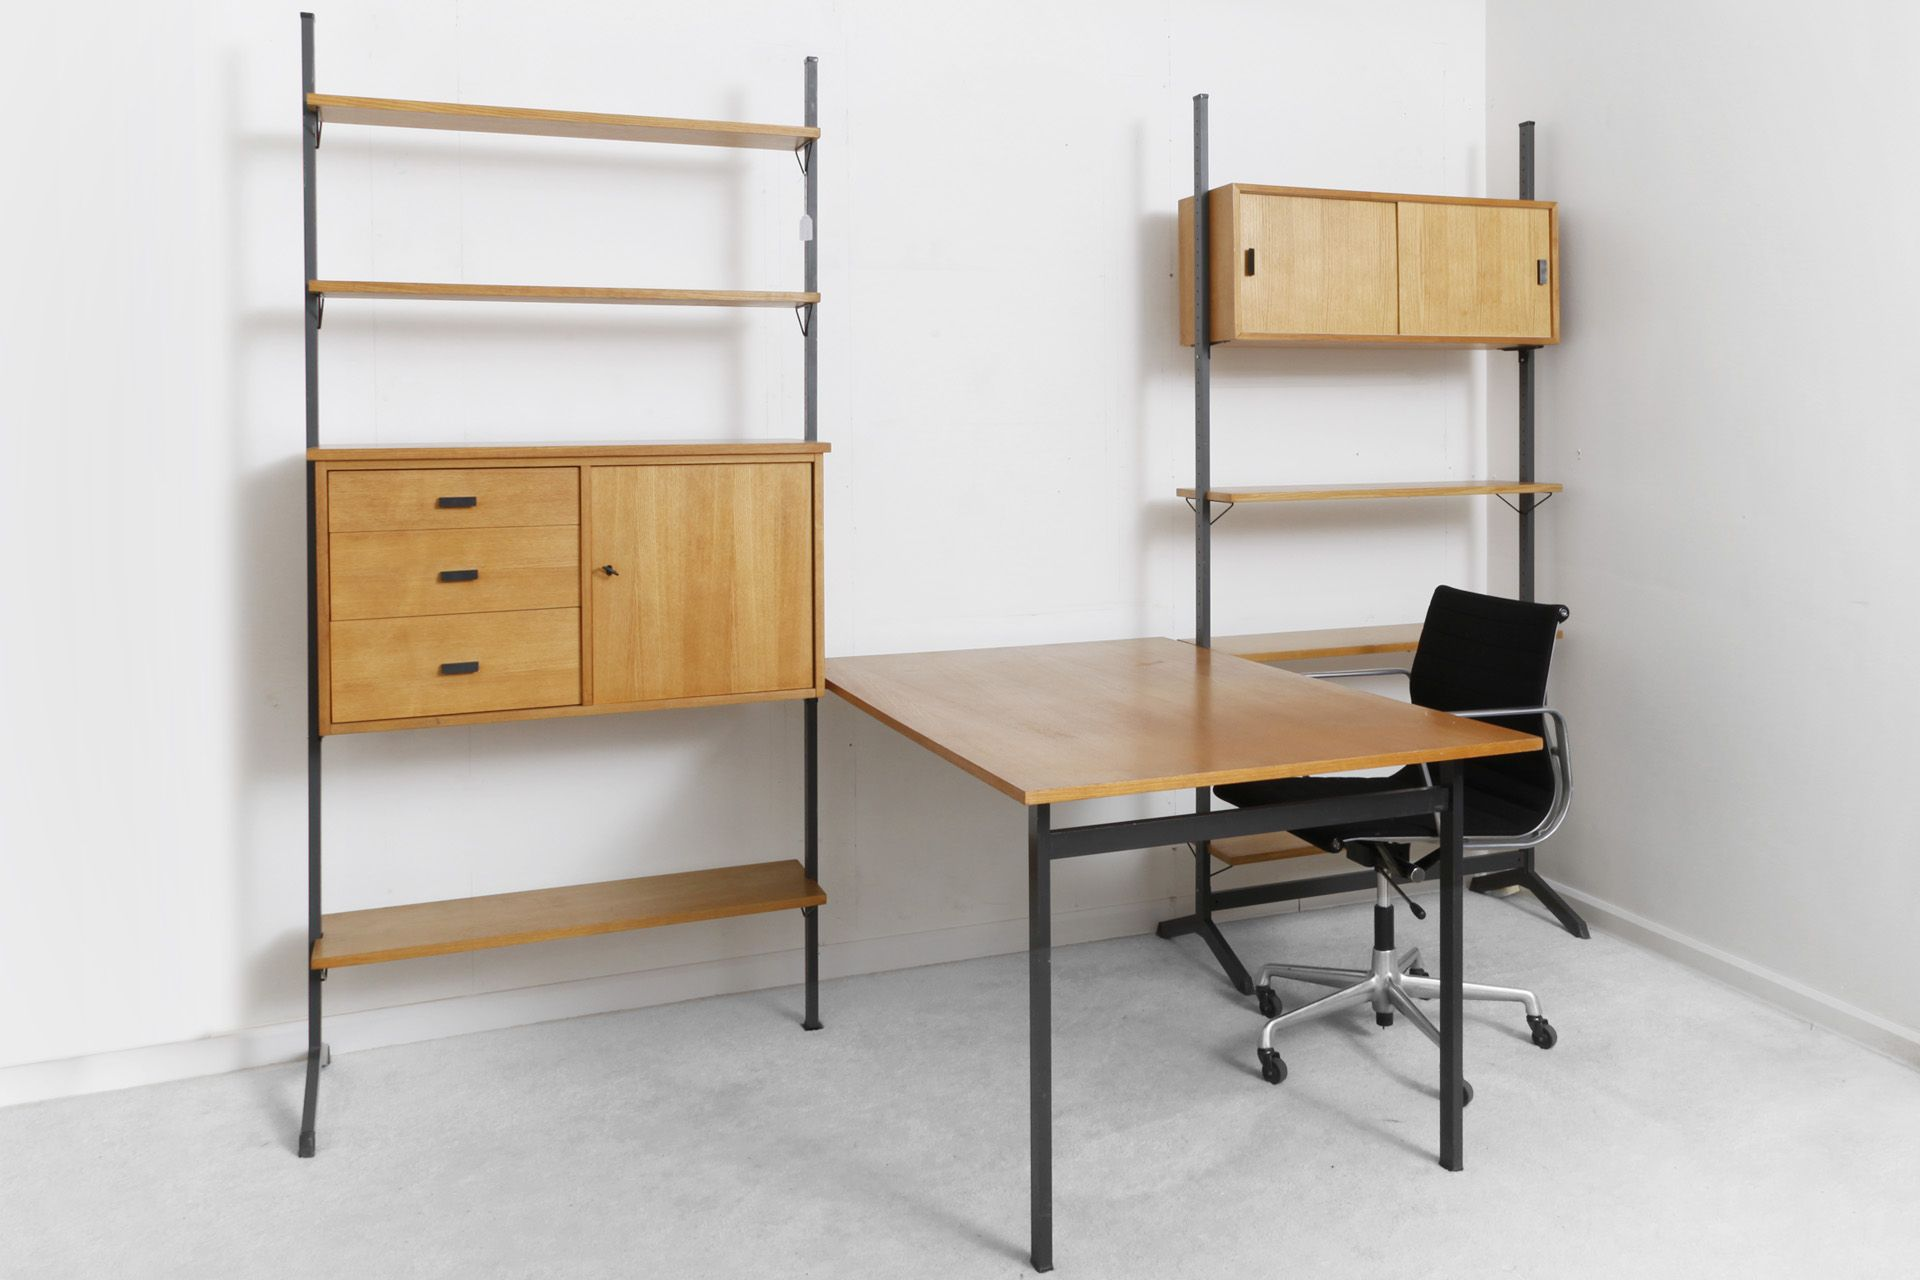 Shelf system by Pira forming a complete small office. SOLD